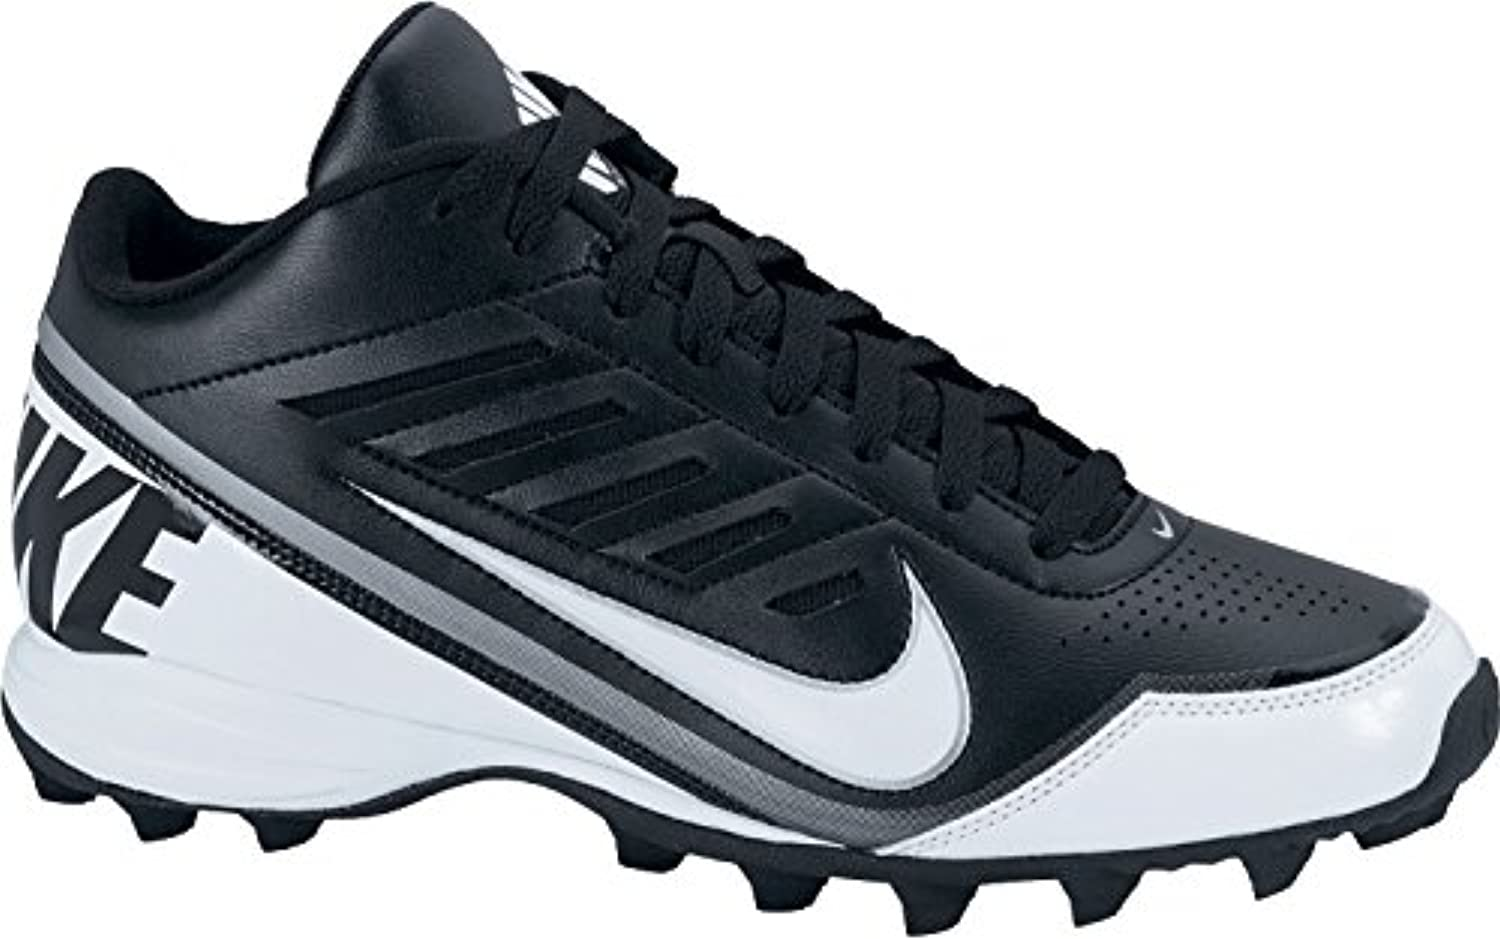 Nike Men's Land Shark 2 Mid Molded Football Cleats